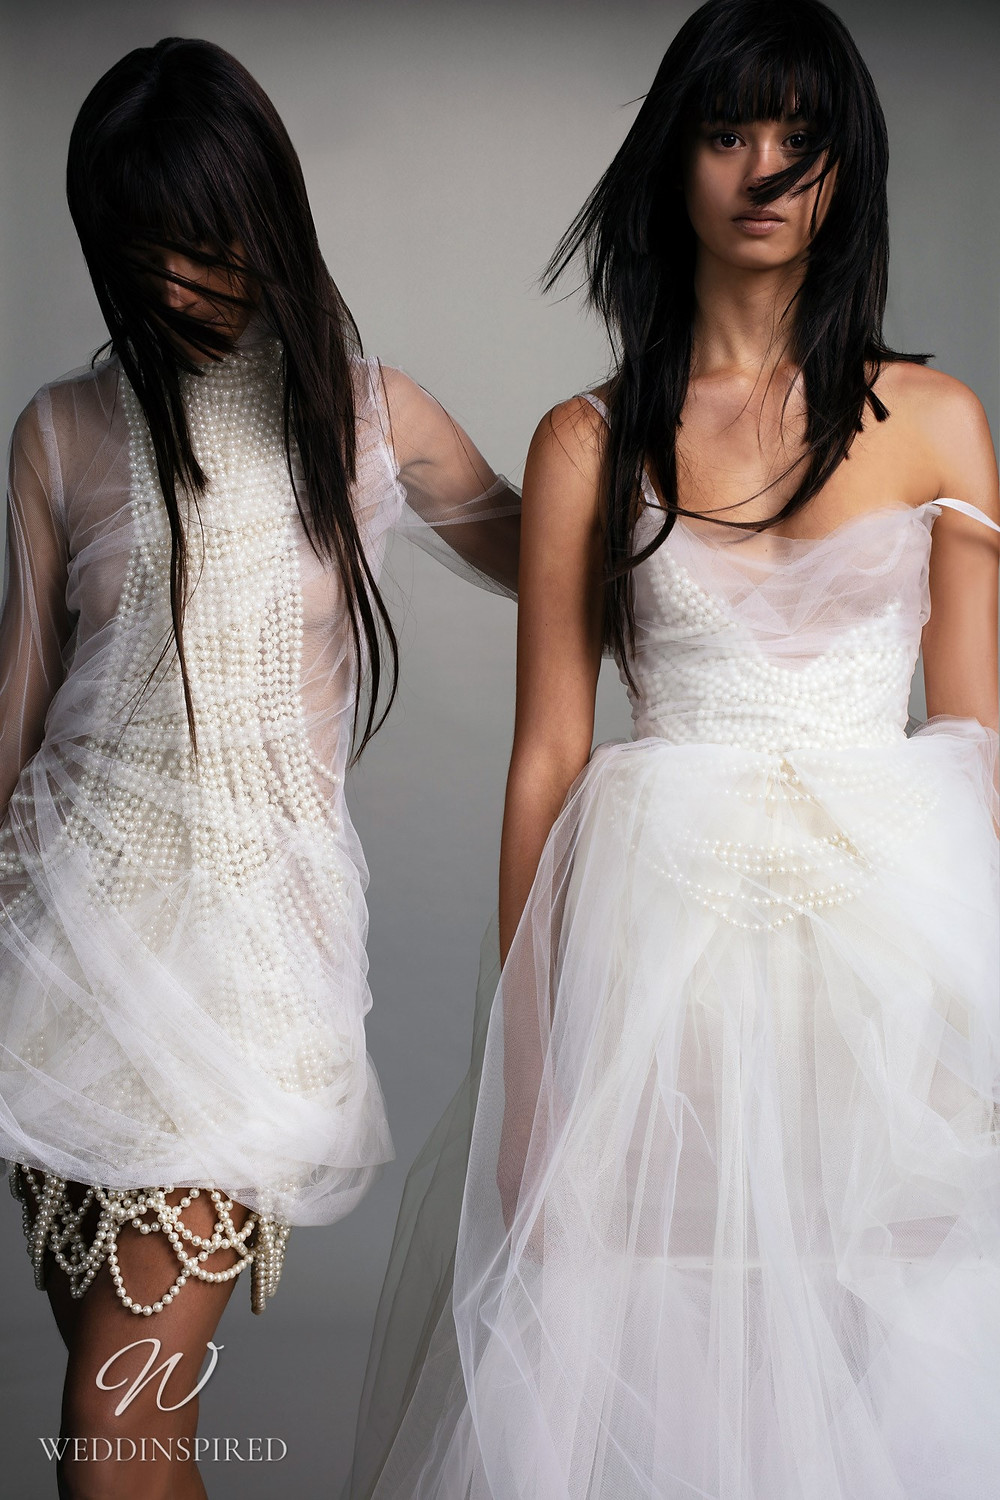 A Vera Wang Fall 2021 tulle A-line wedding dress with straps and pearls